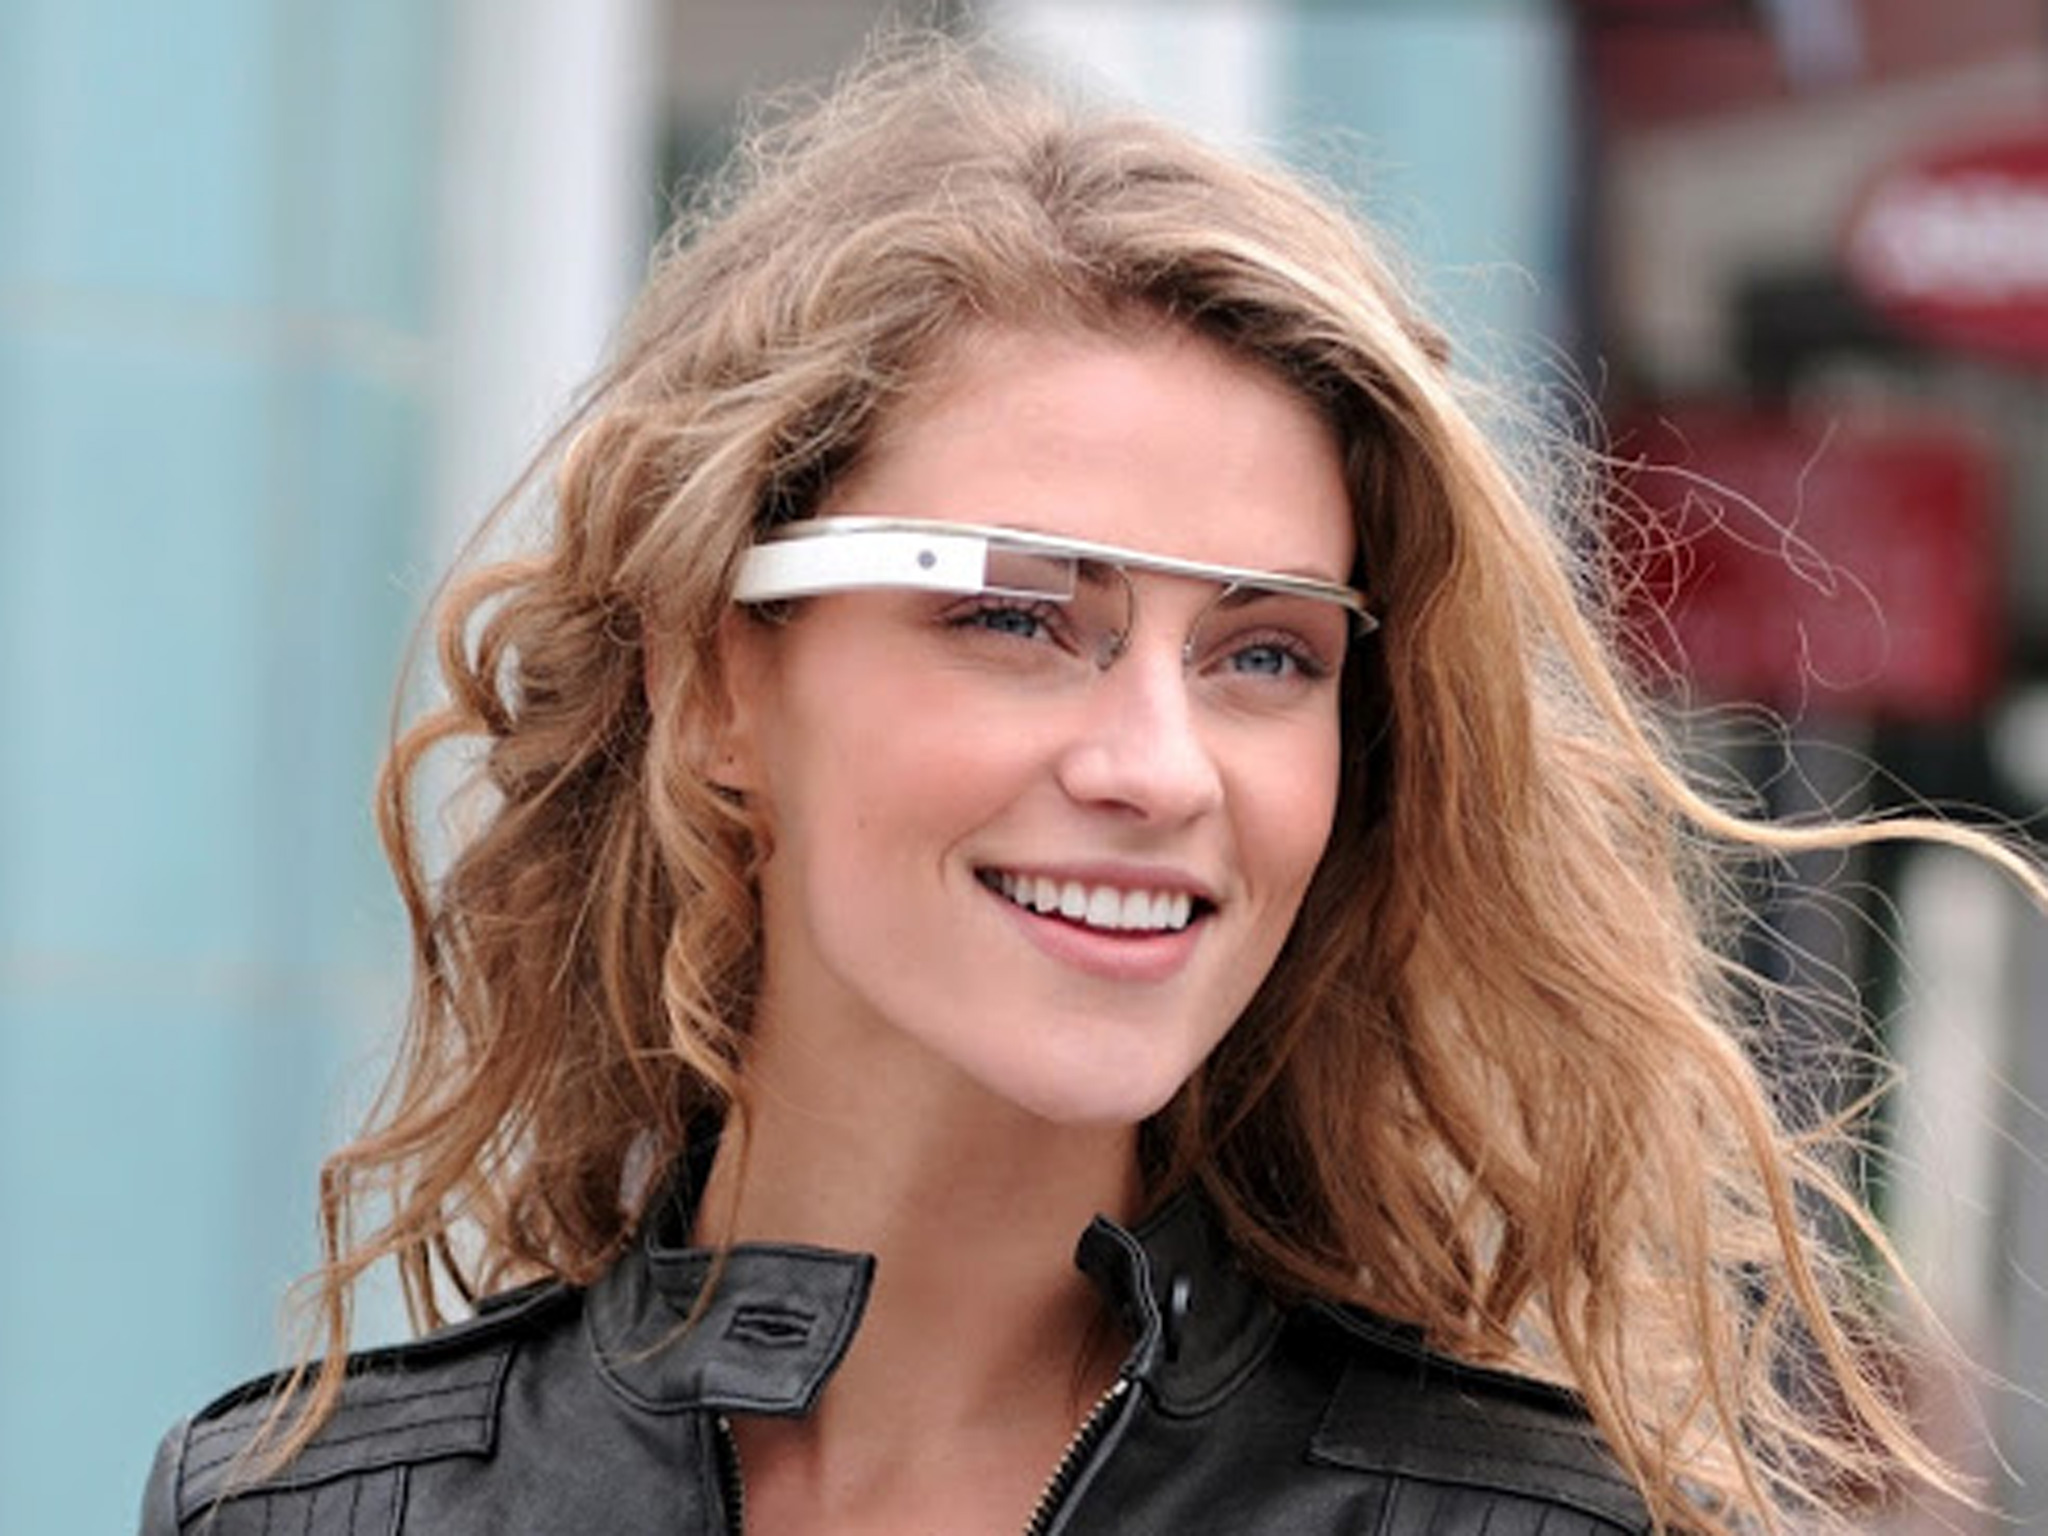 Beautiful Model Introducing Black Google glass